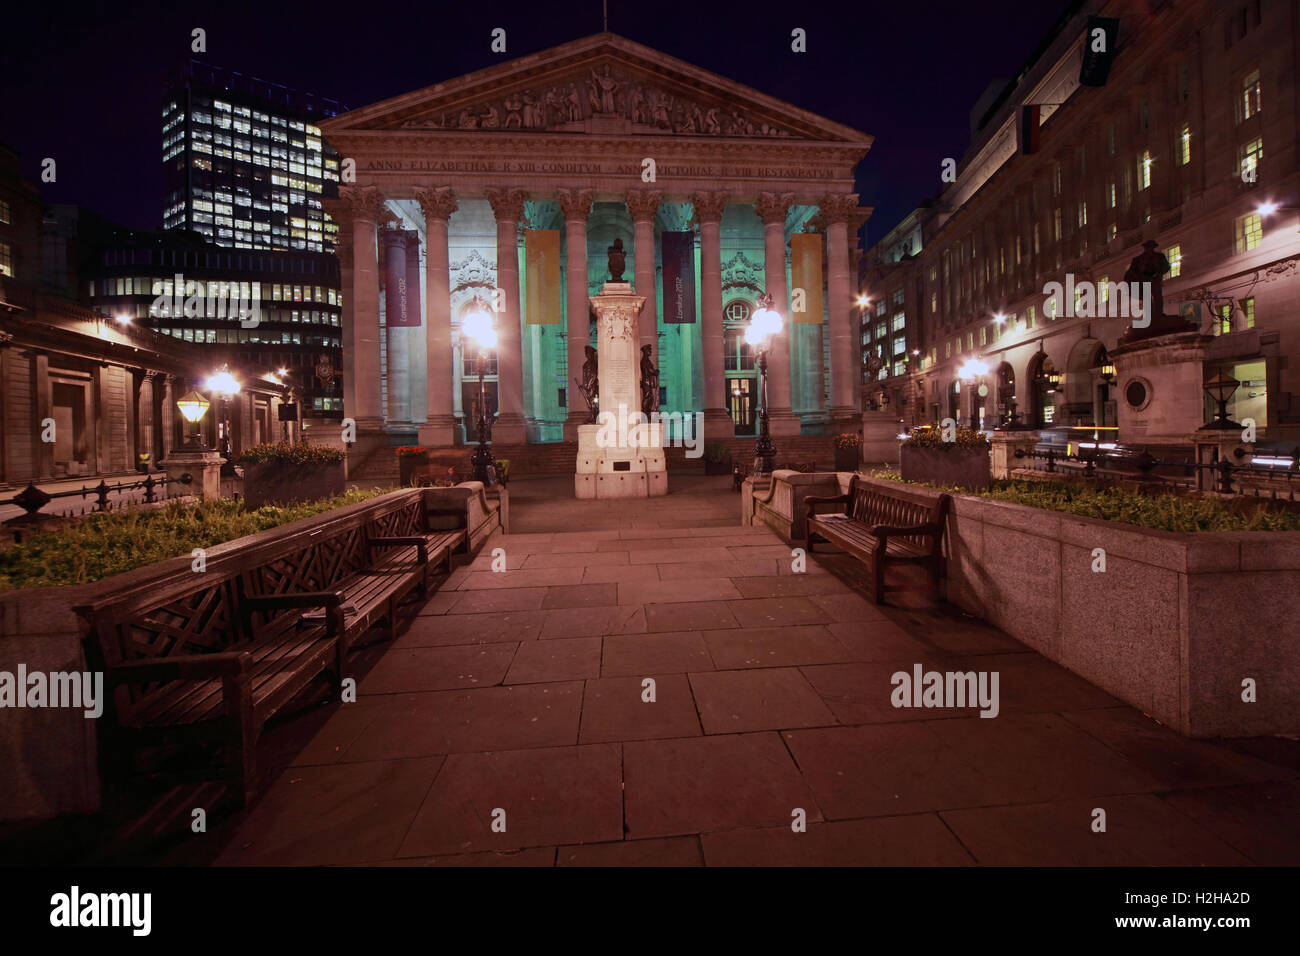 Bank of England at night, City Of London, South East England, UK - Stock Image